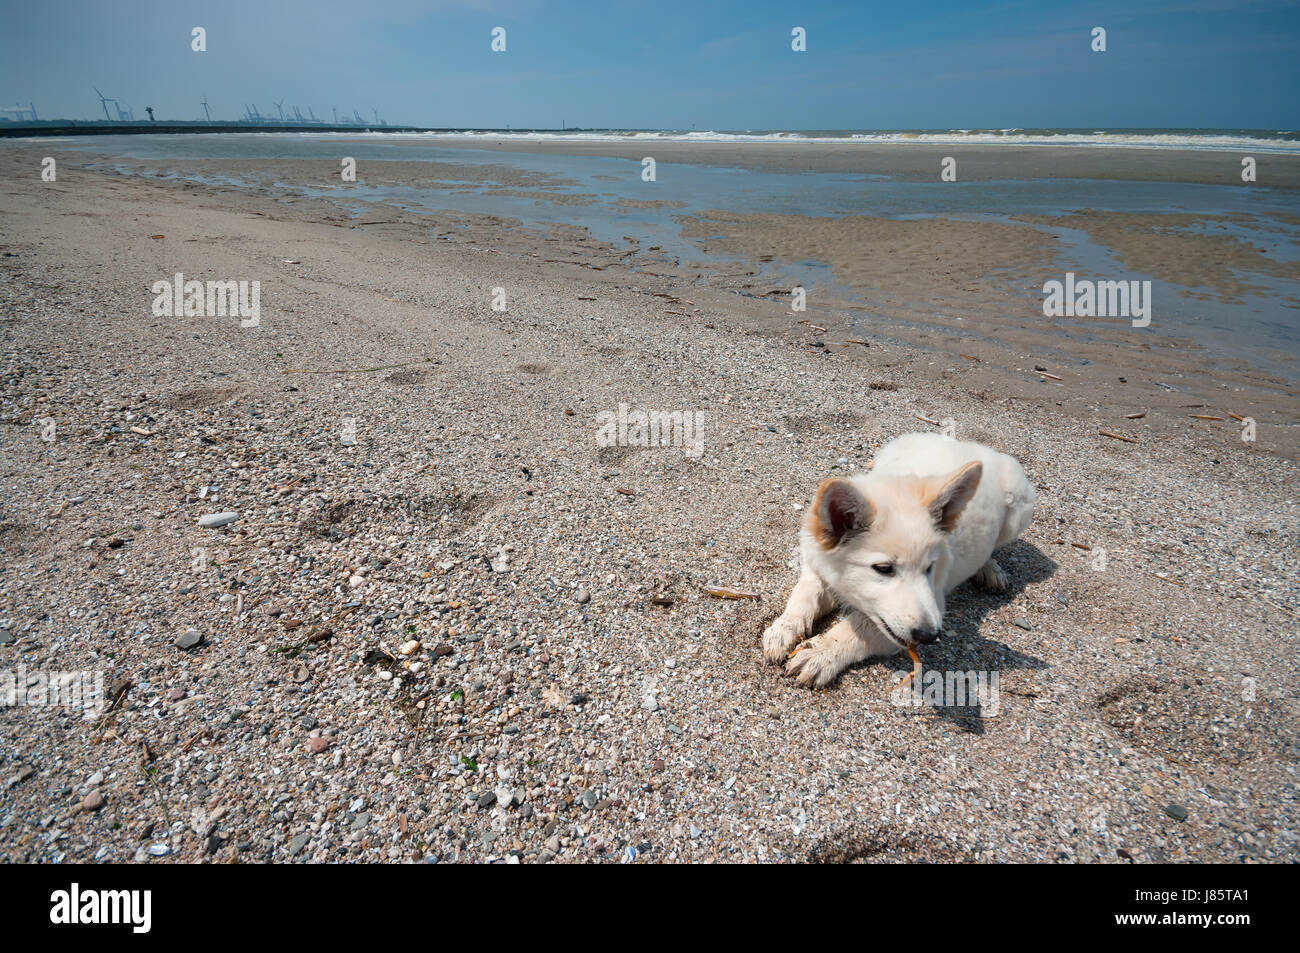 Little swiss shepherd dog lying on a beach, Rotterdam, Netherlands - Stock Image